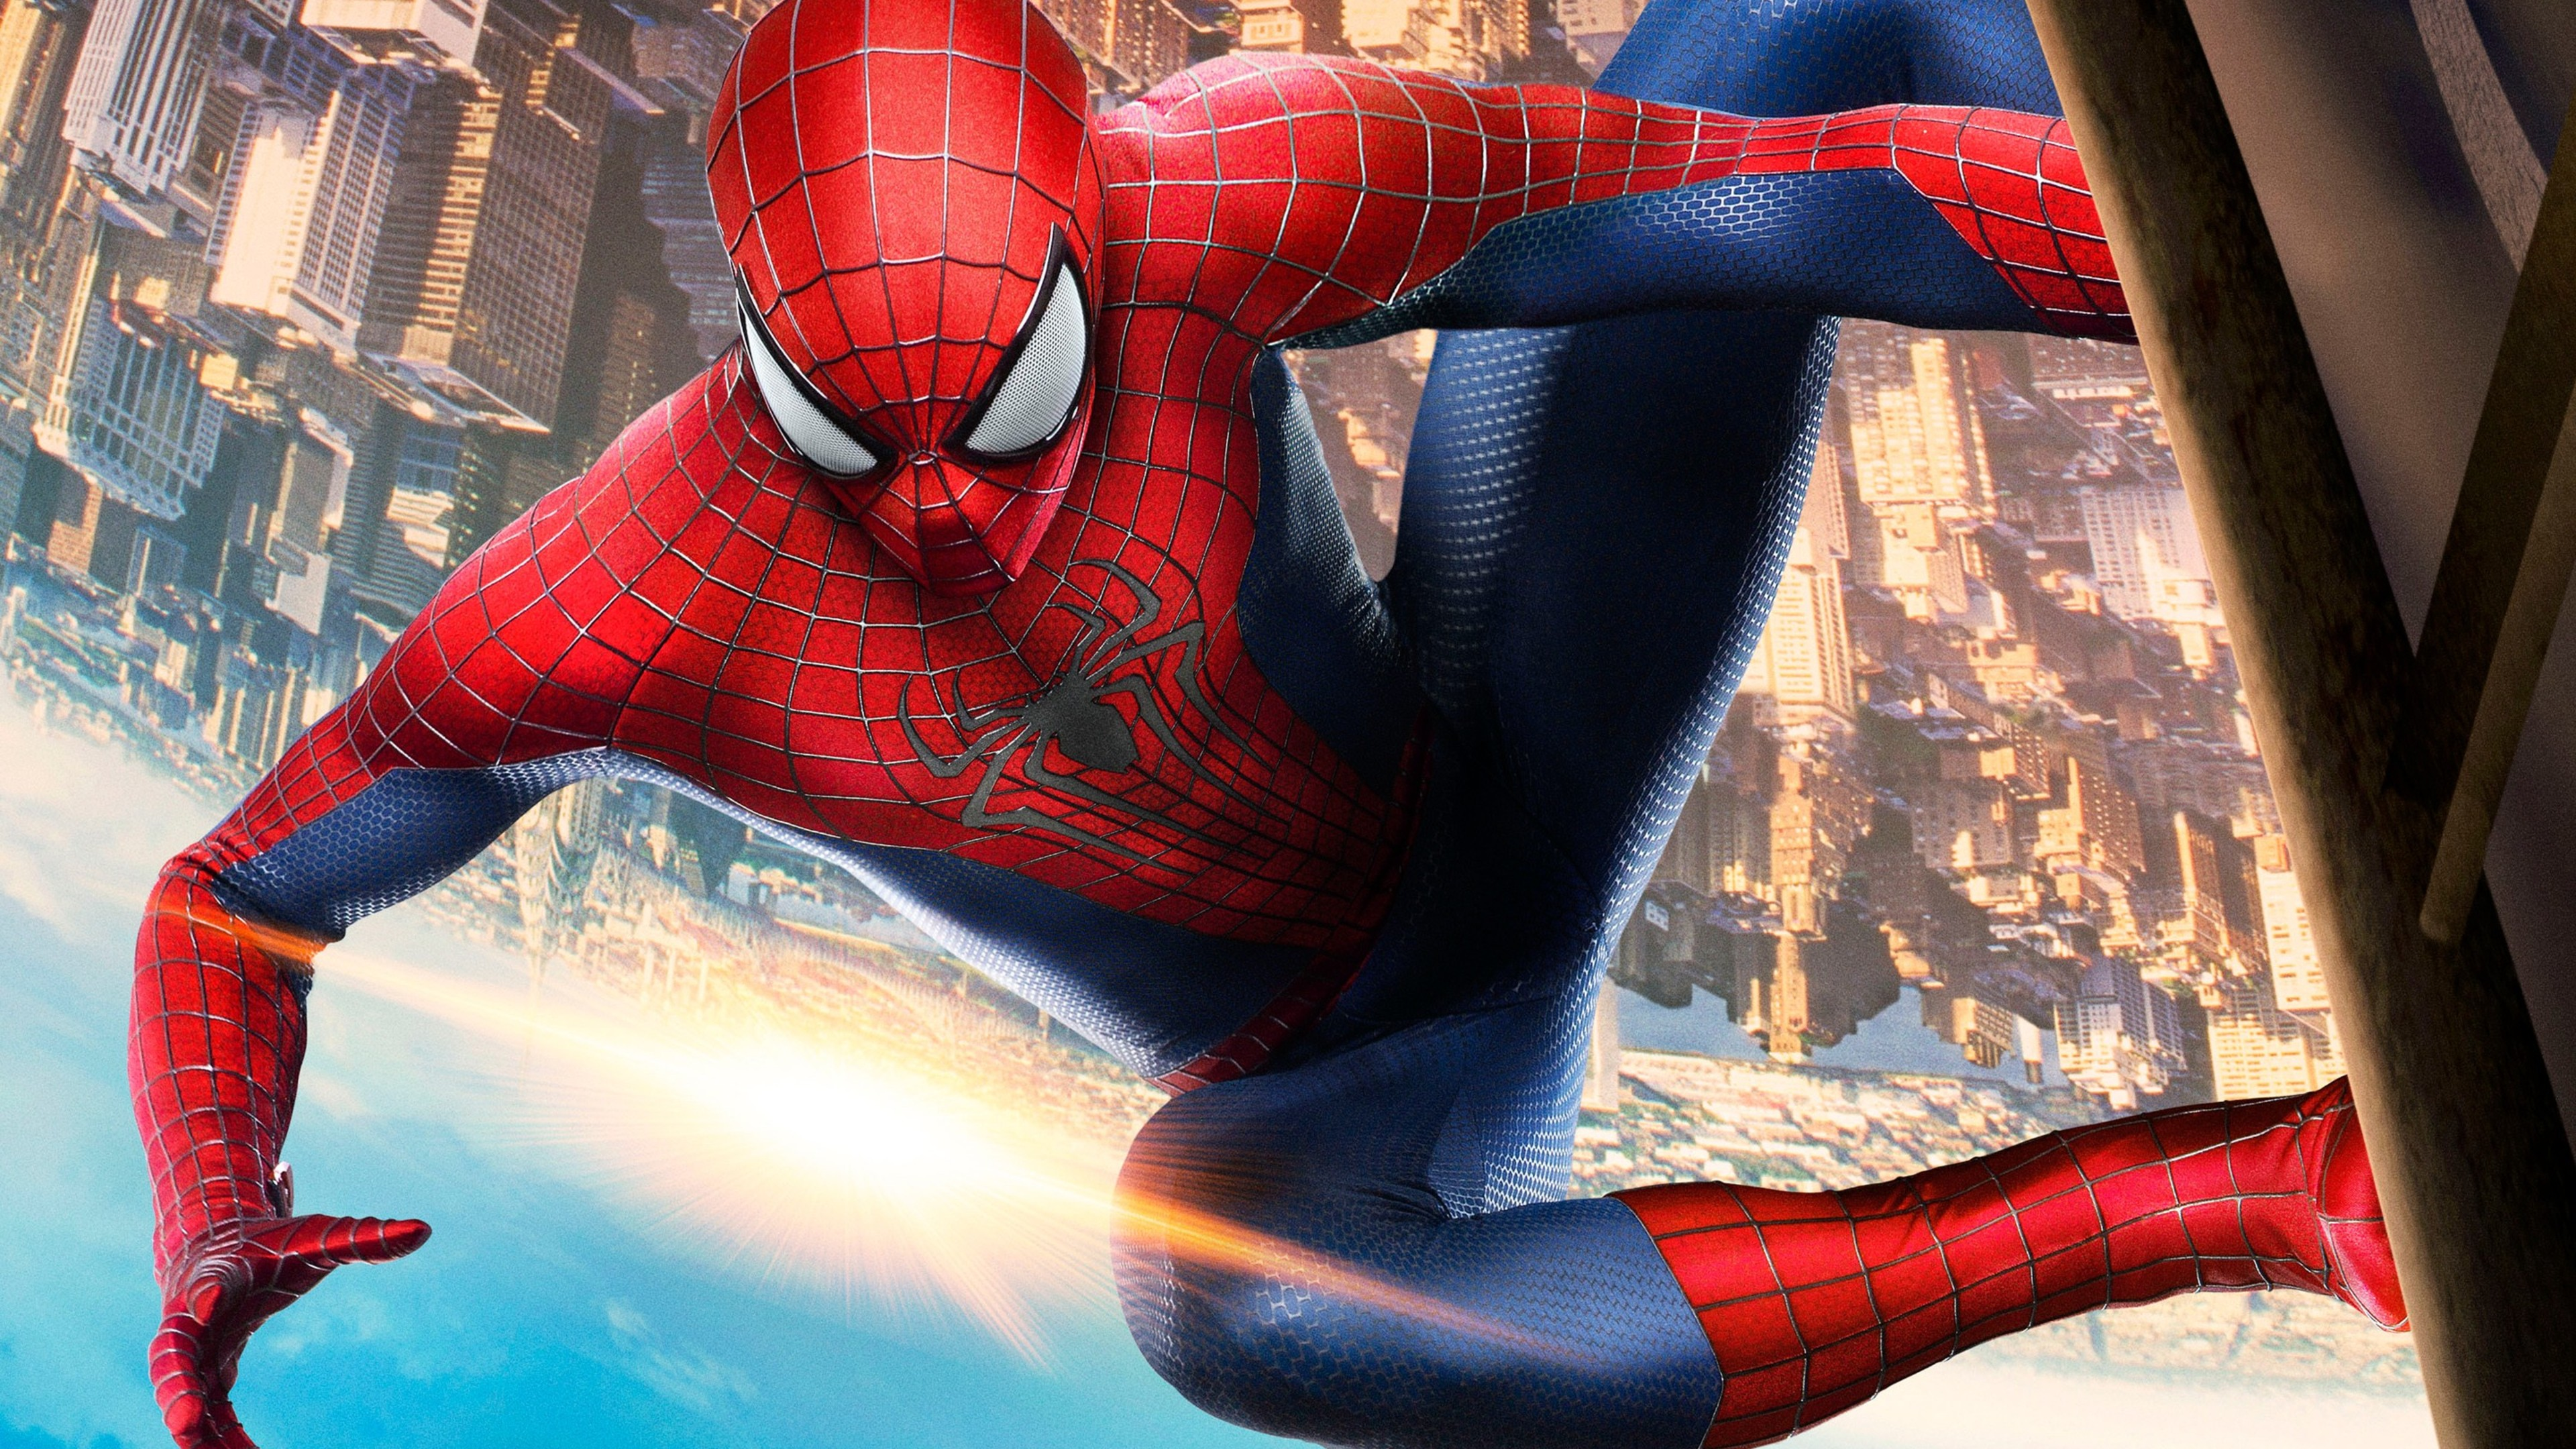 the amazing spider man 2 hd movies 4k wallpapers images